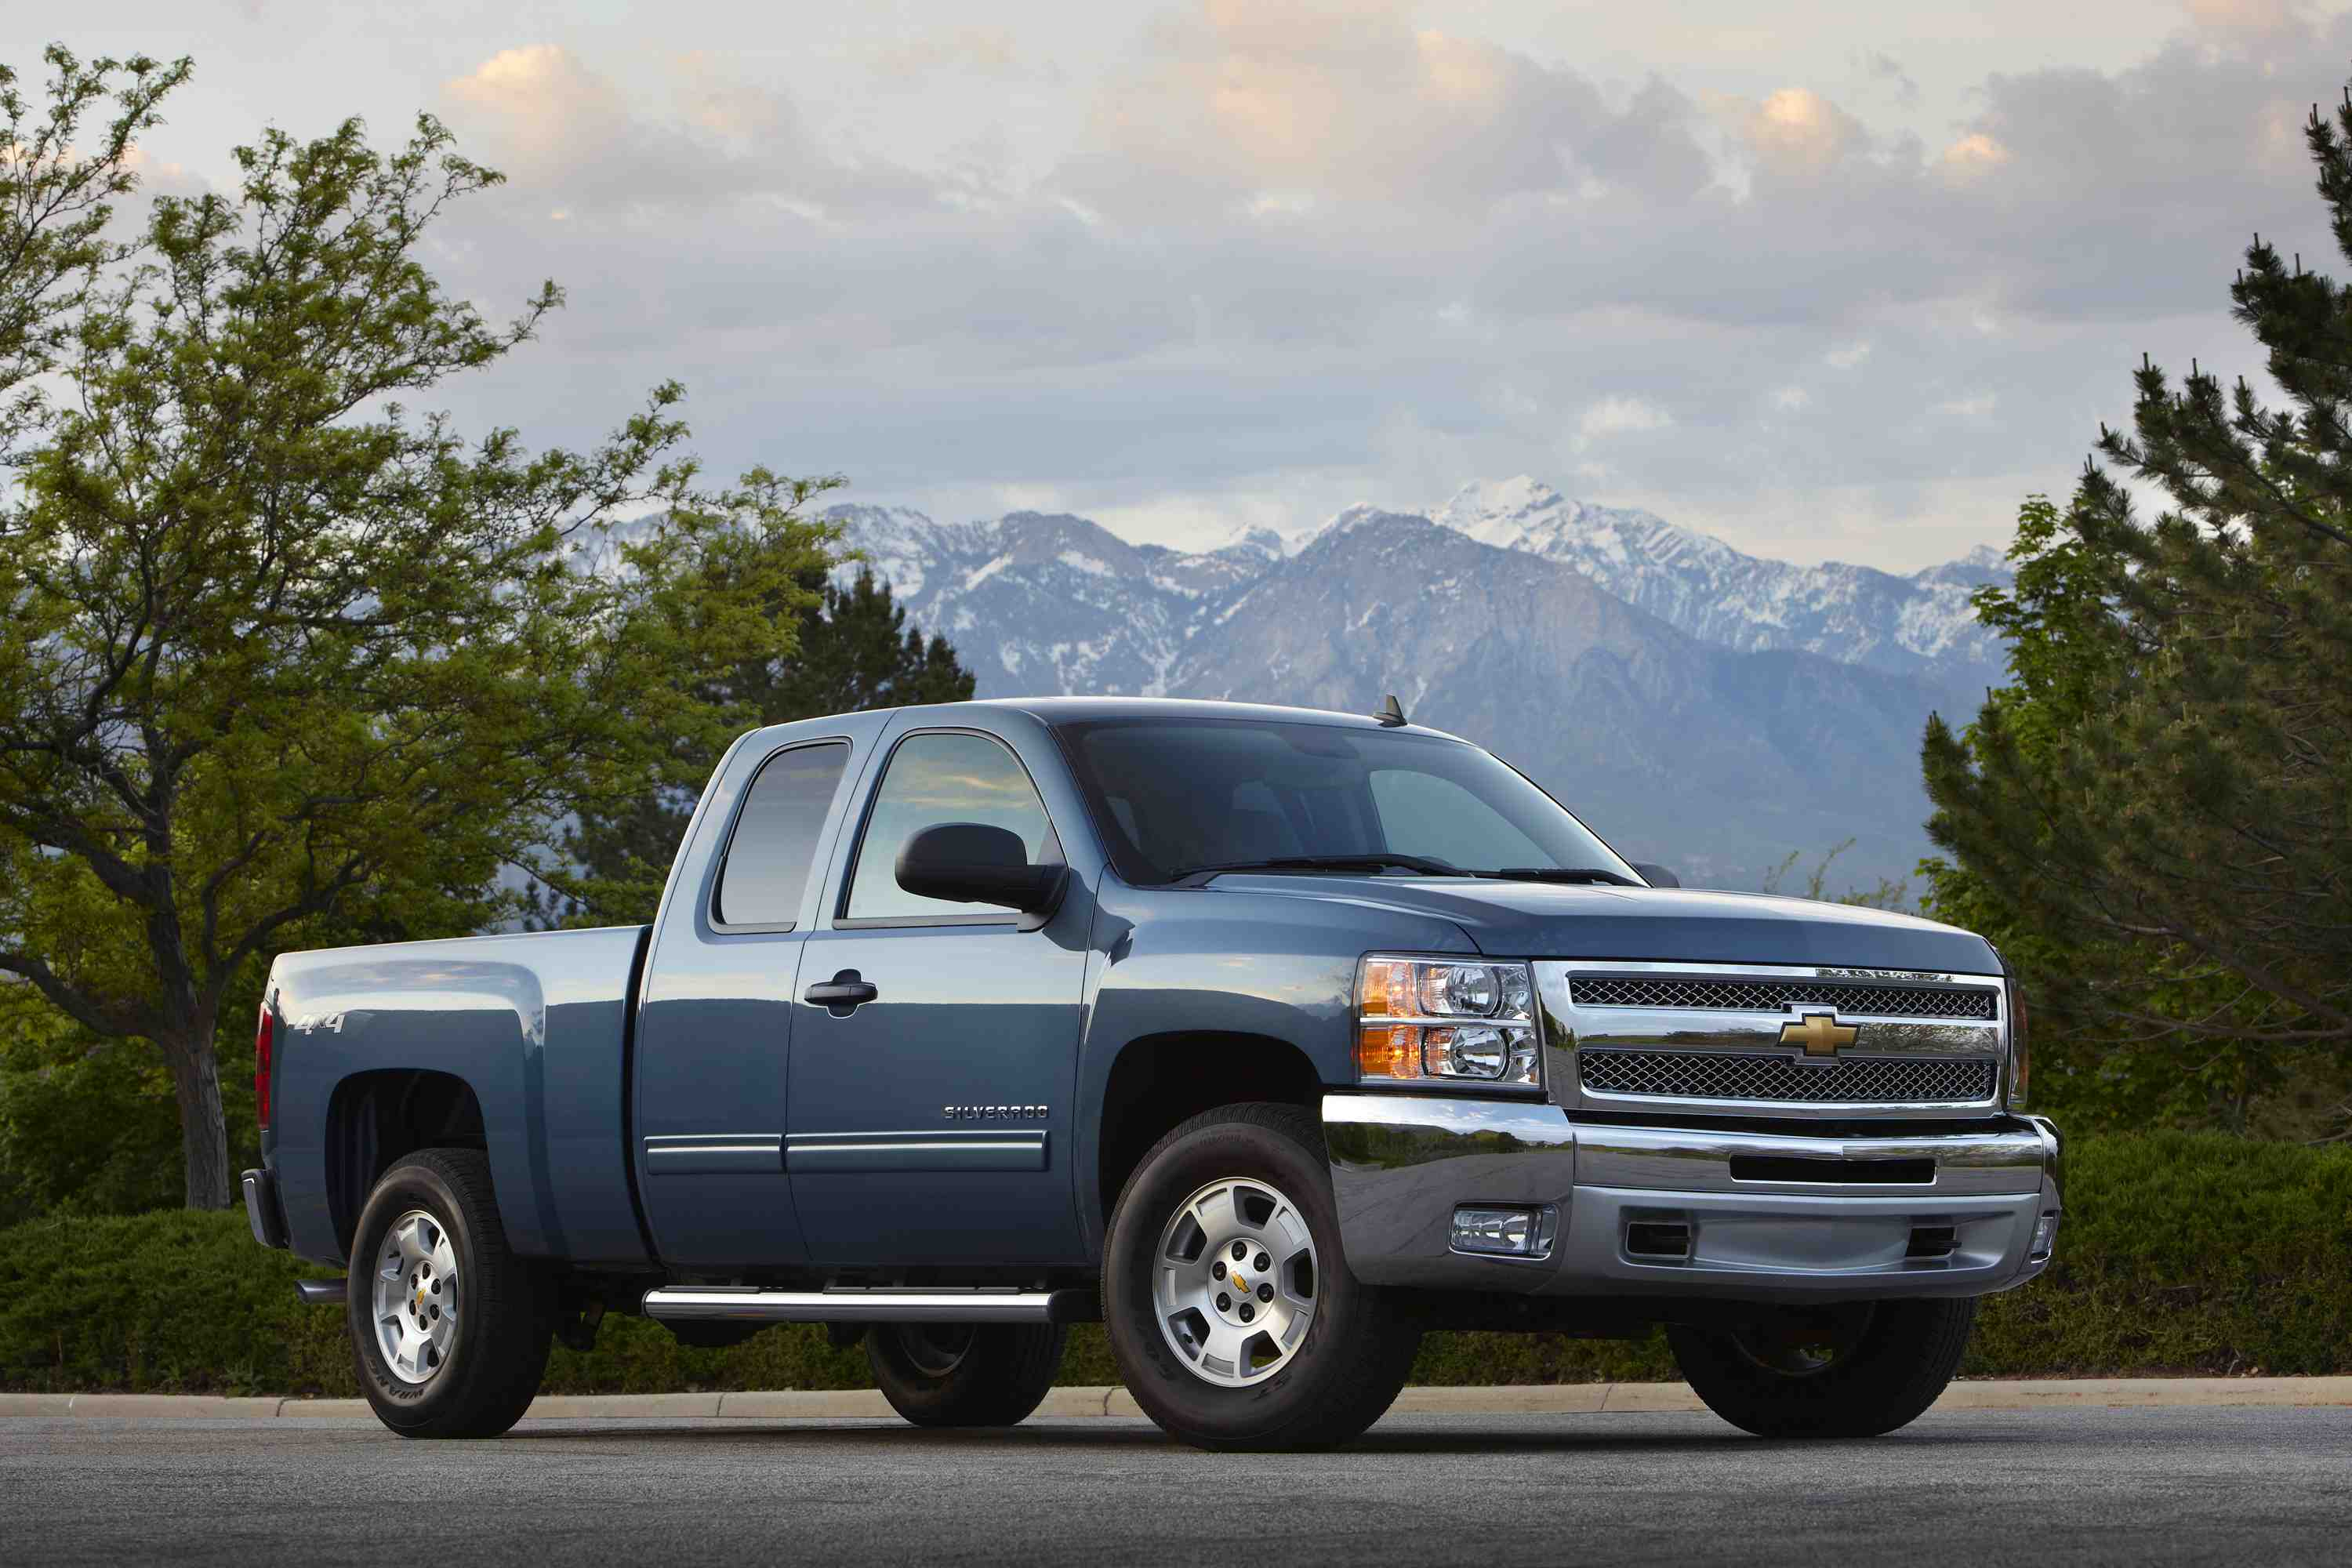 2012 chevrolet silverado lt extended cab pickup news. Black Bedroom Furniture Sets. Home Design Ideas